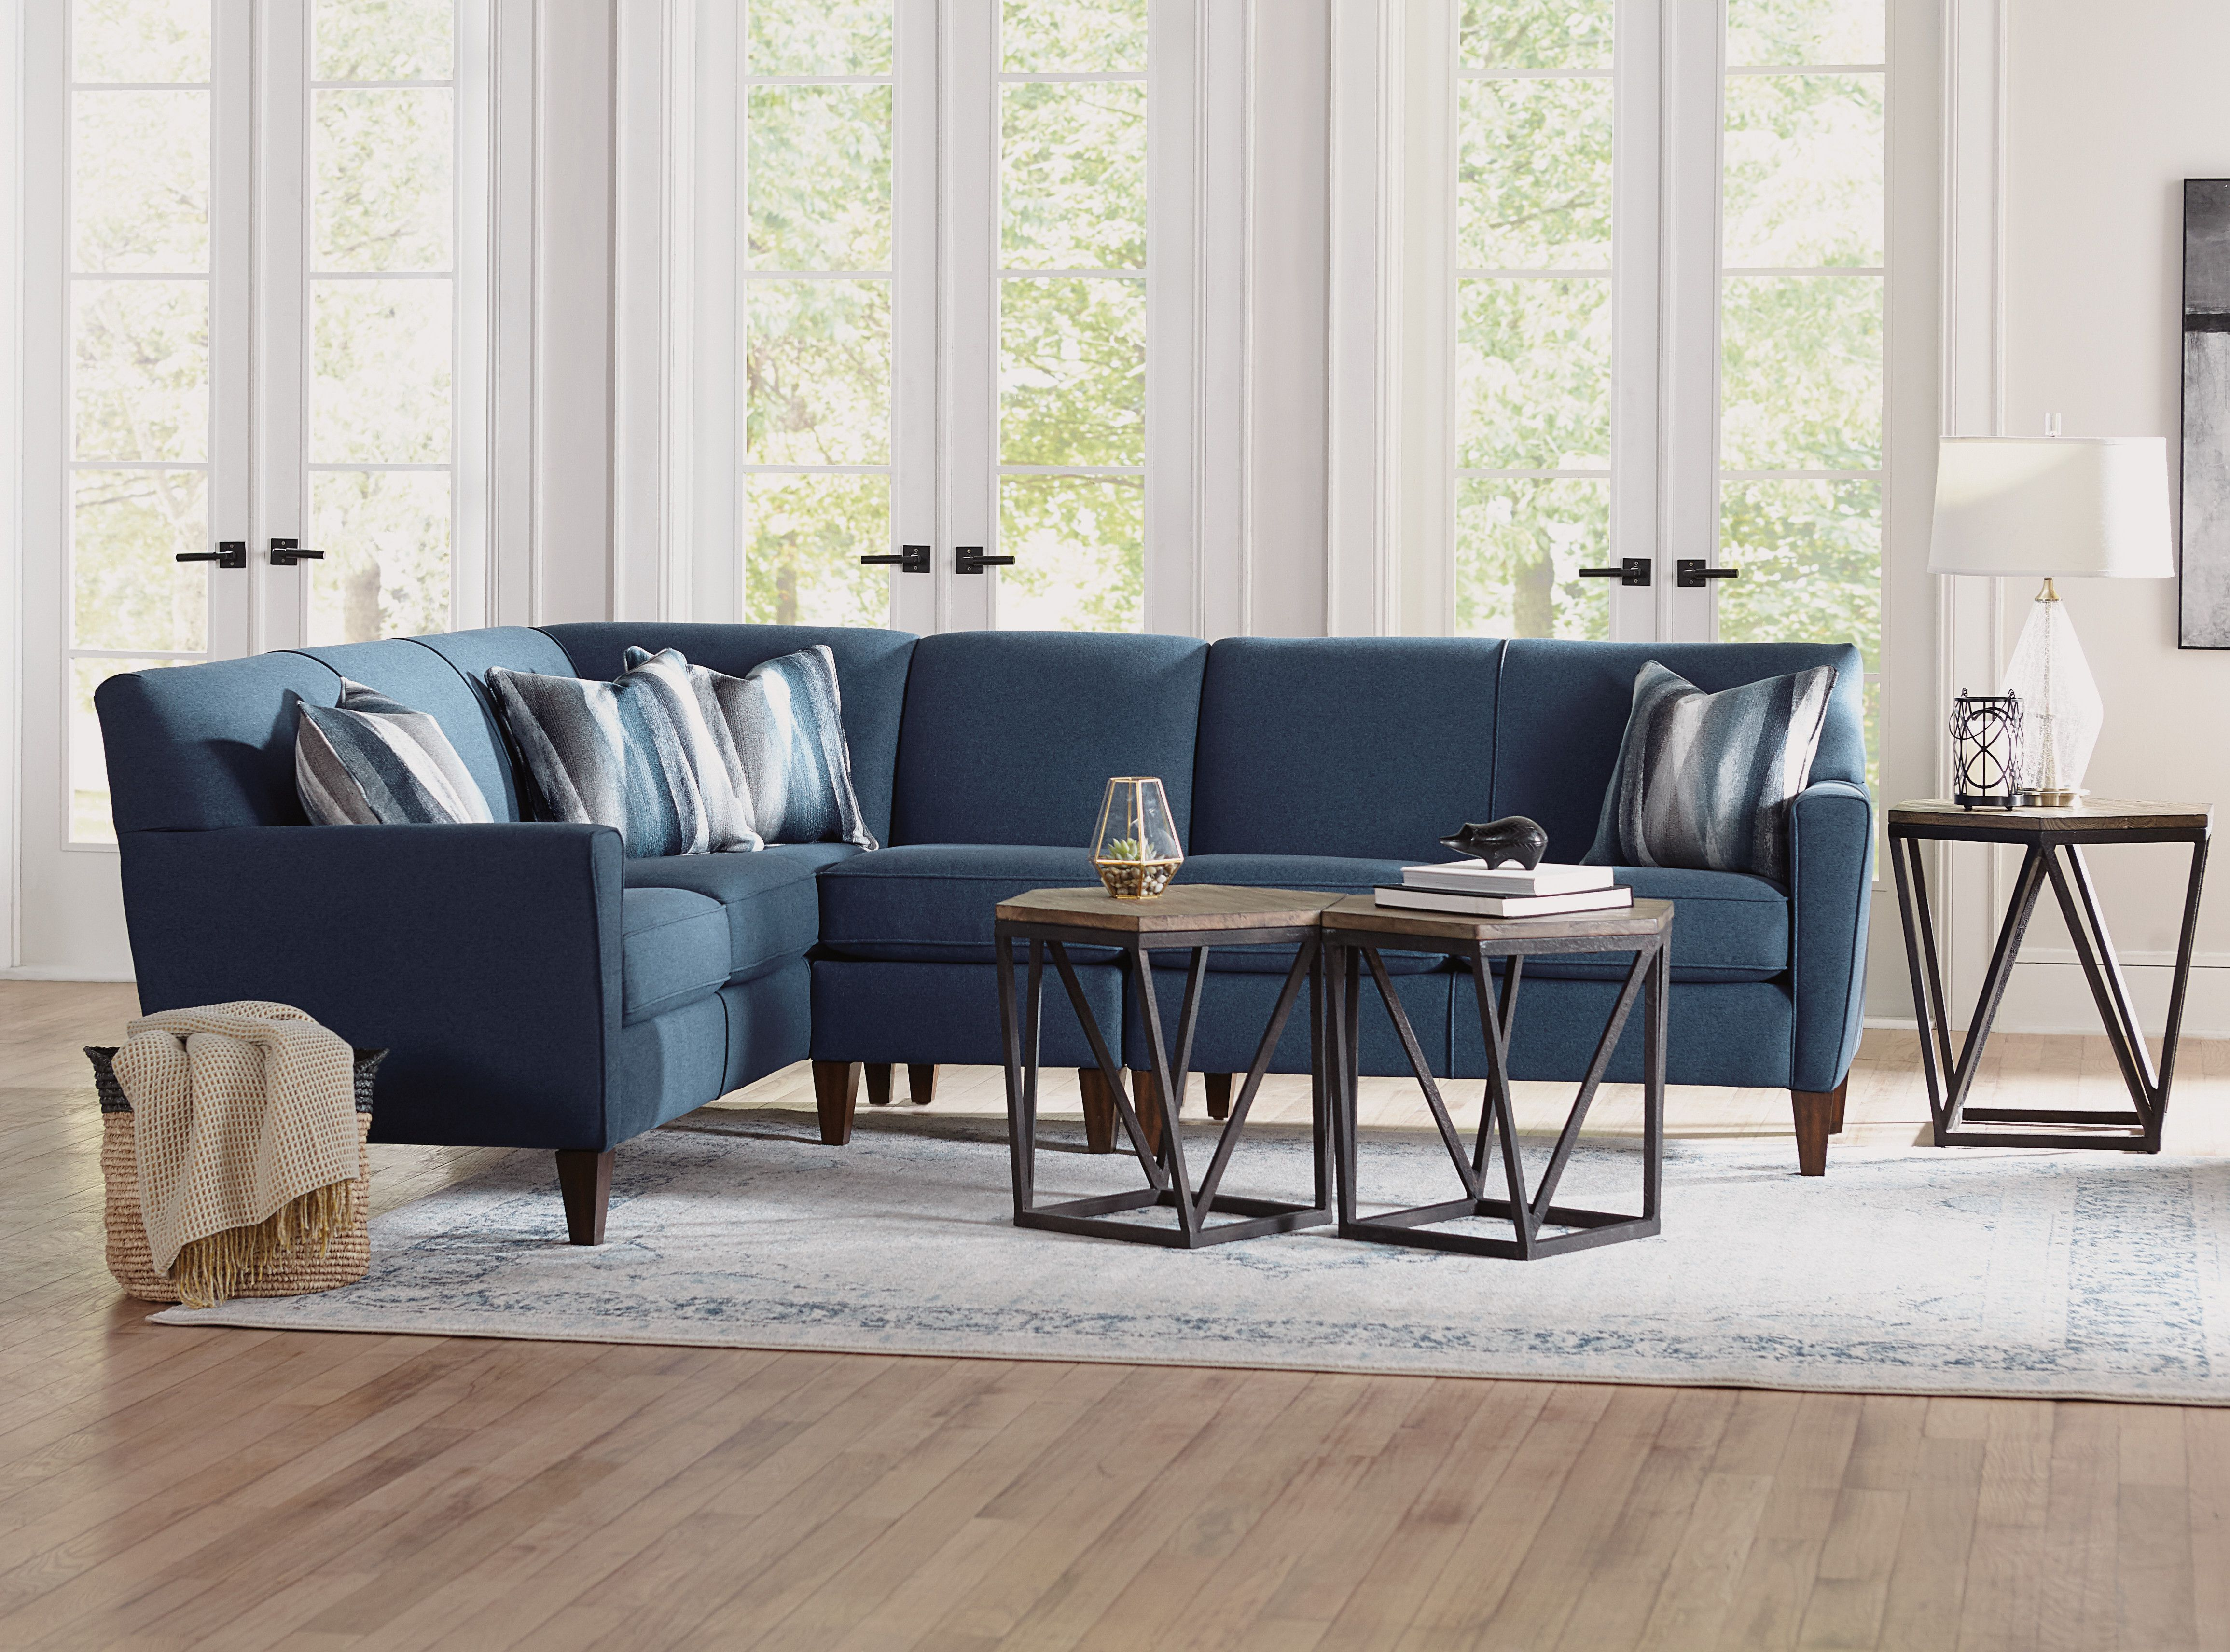 The Digby Sectional By Flexsteel Flexsteel Furniture Is Available